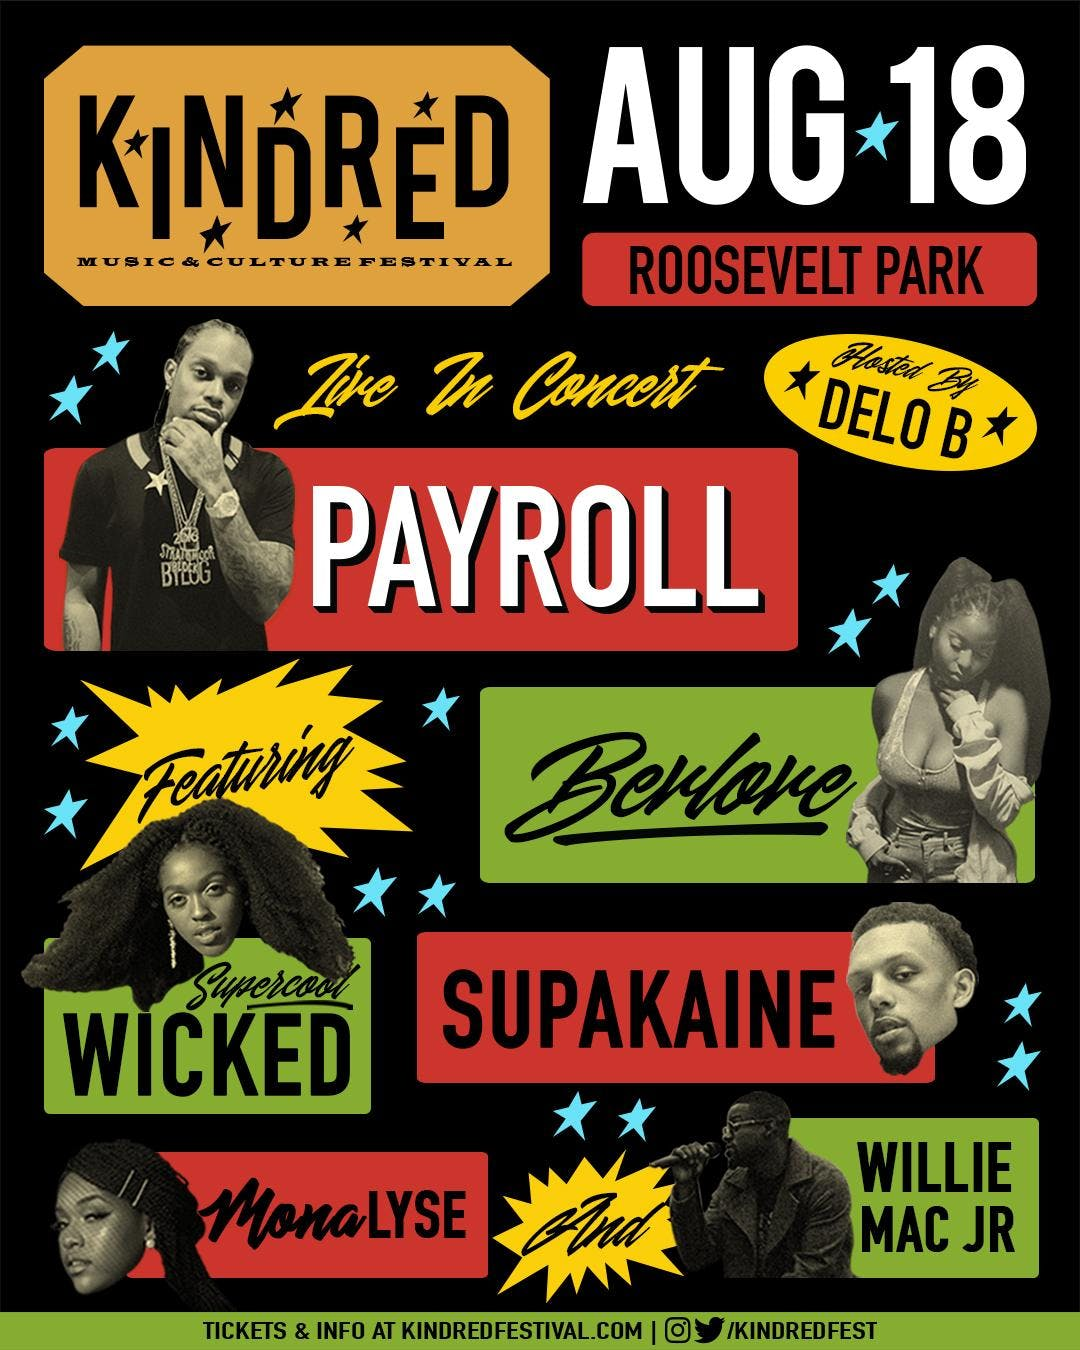 Kindred Music & Culture Festival